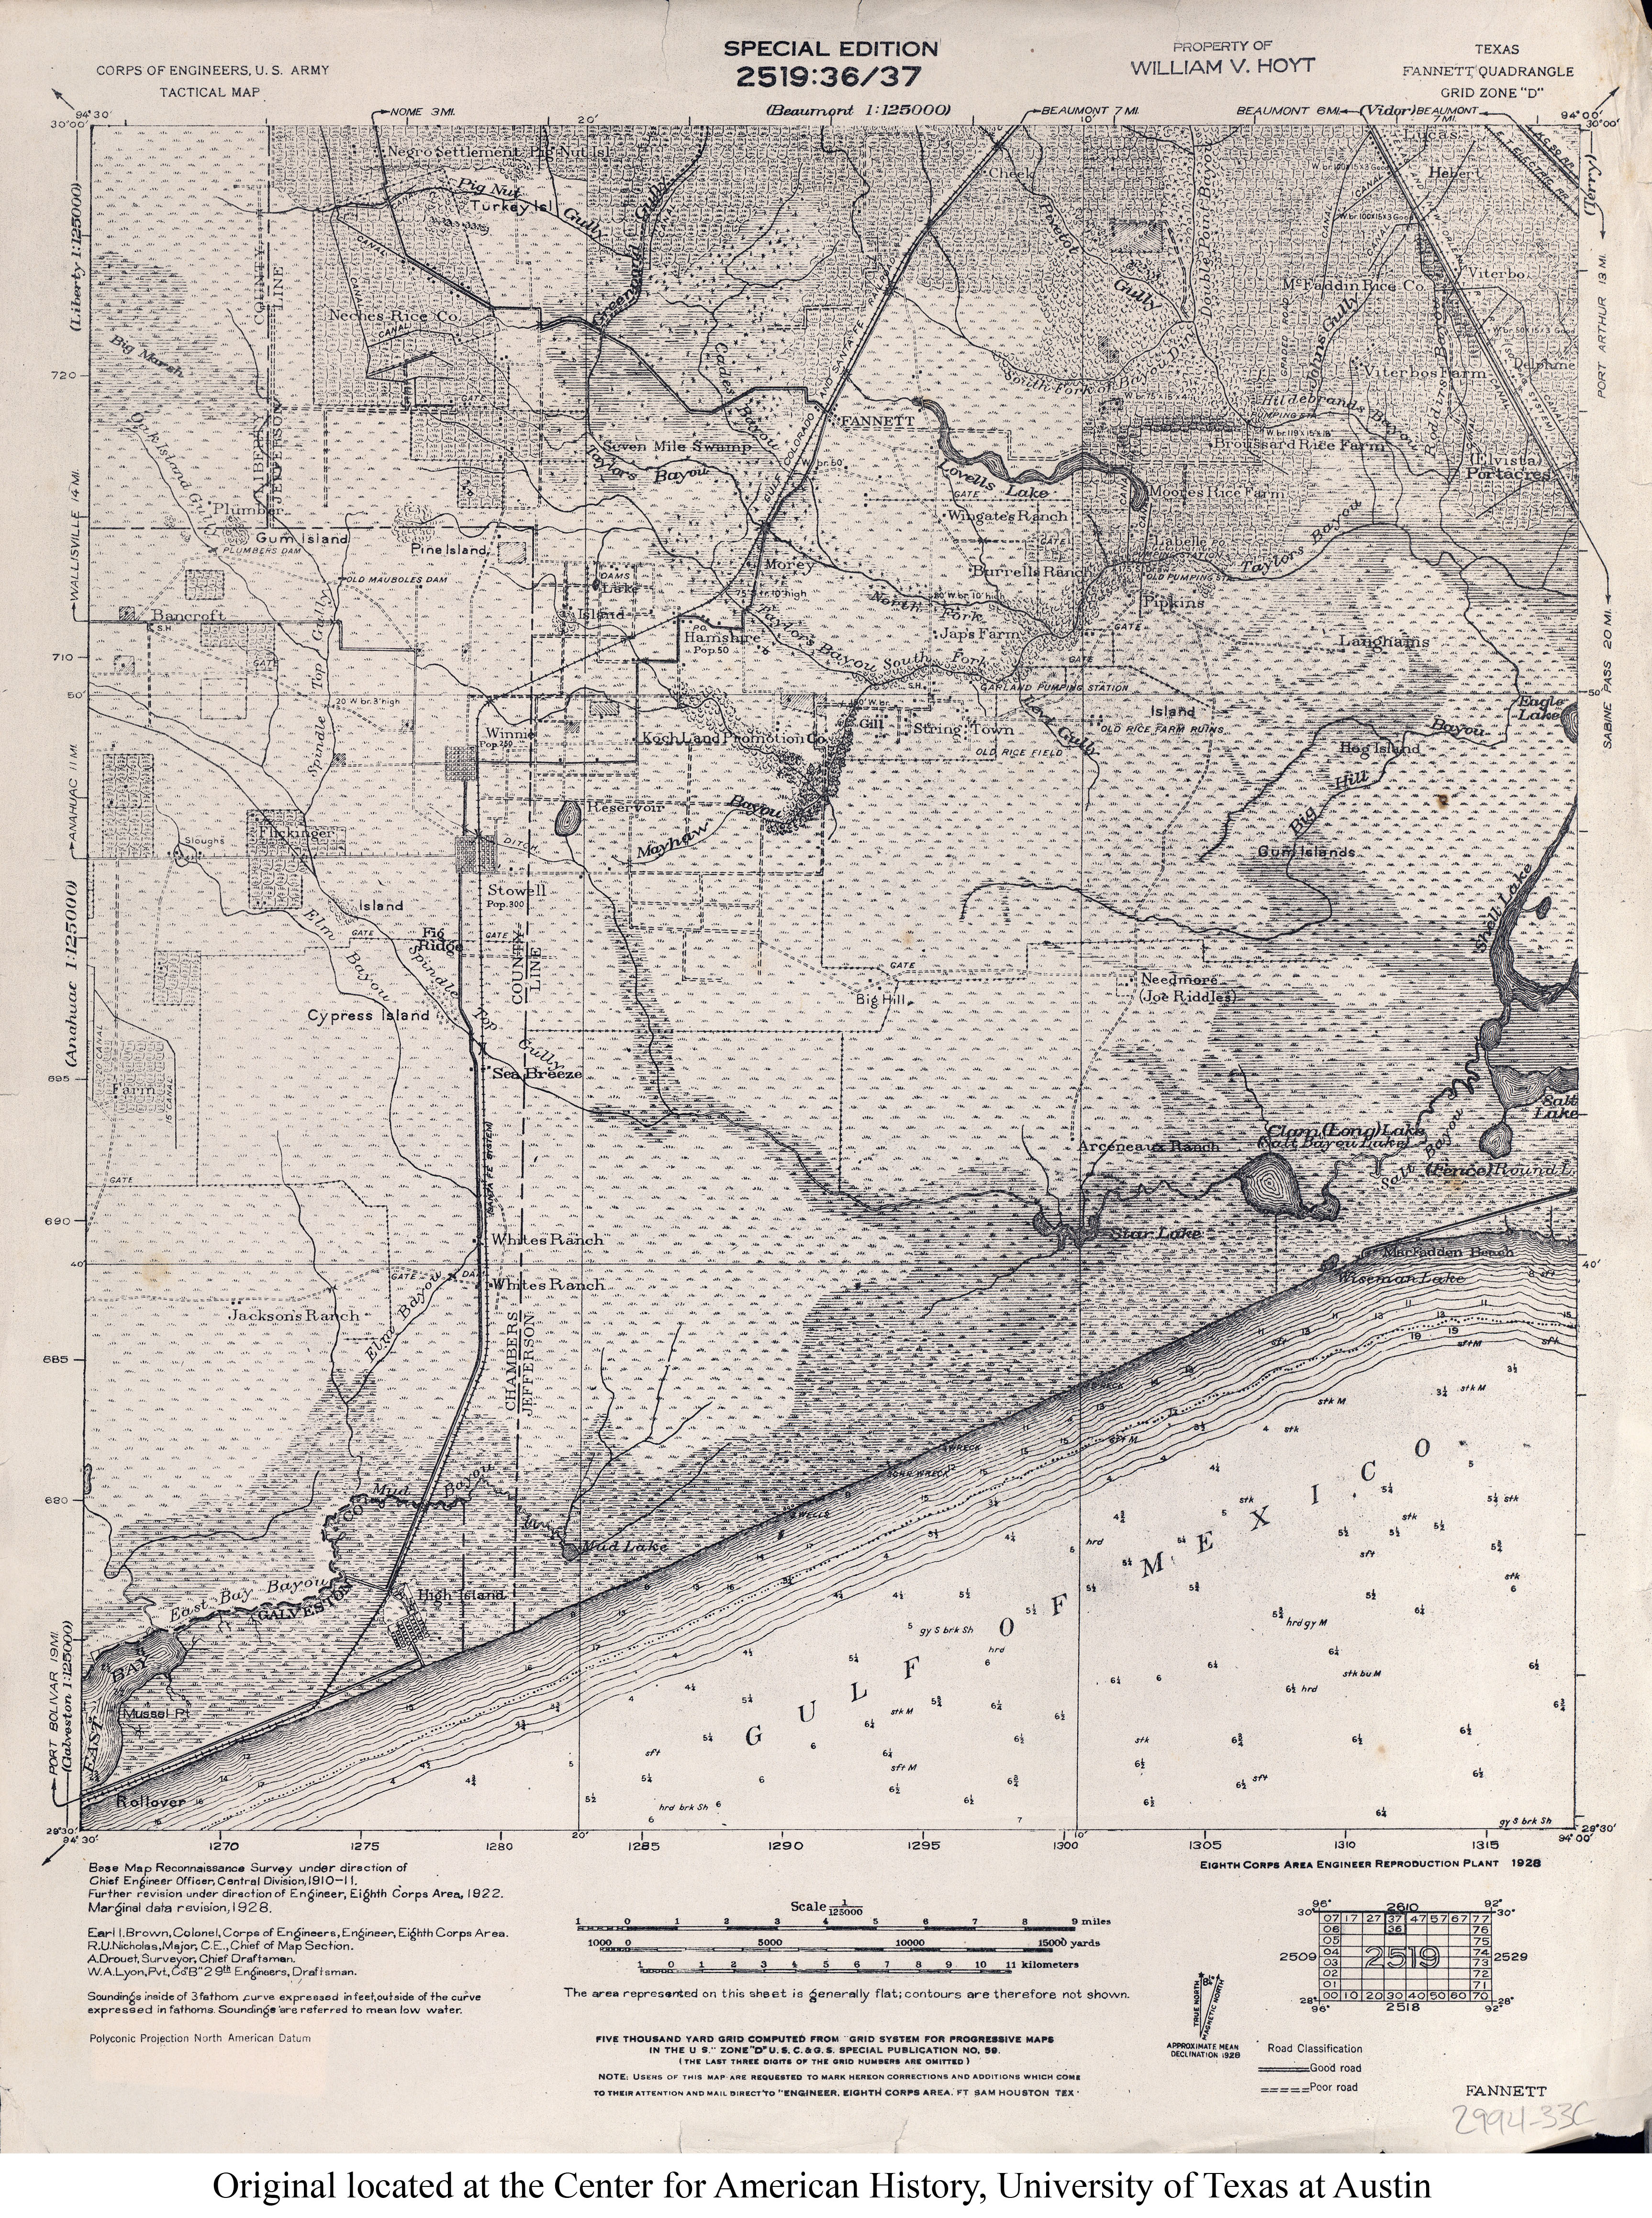 WETLAND MITIGATION BANK PROSPECTUS - Us army corps of engineers frost depth map